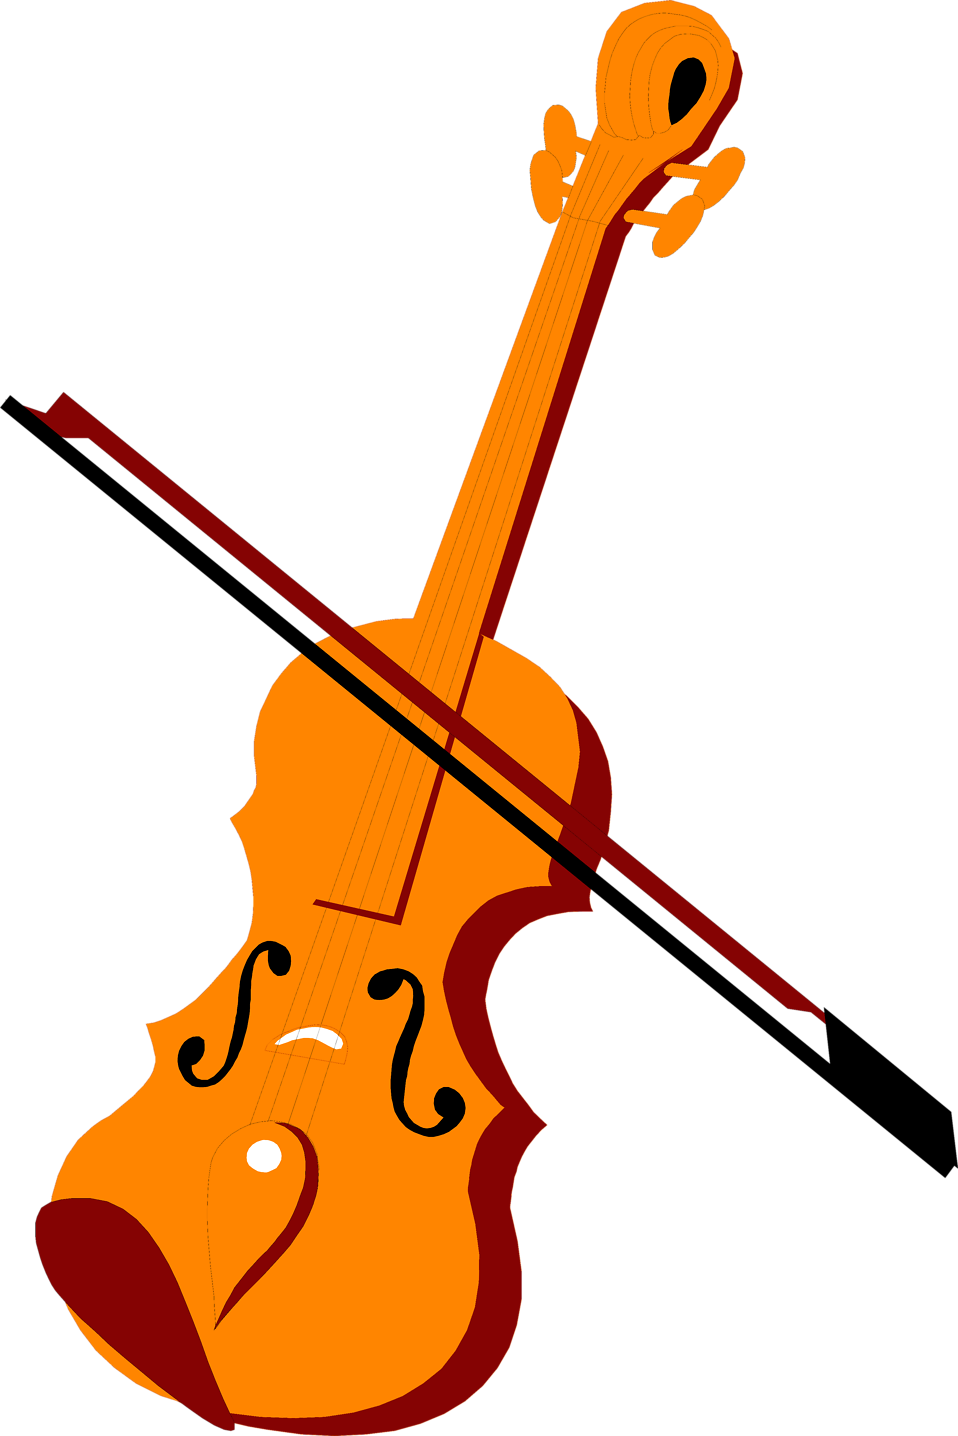 Fiddle Bow Clip Art Illustration Of A Violin And